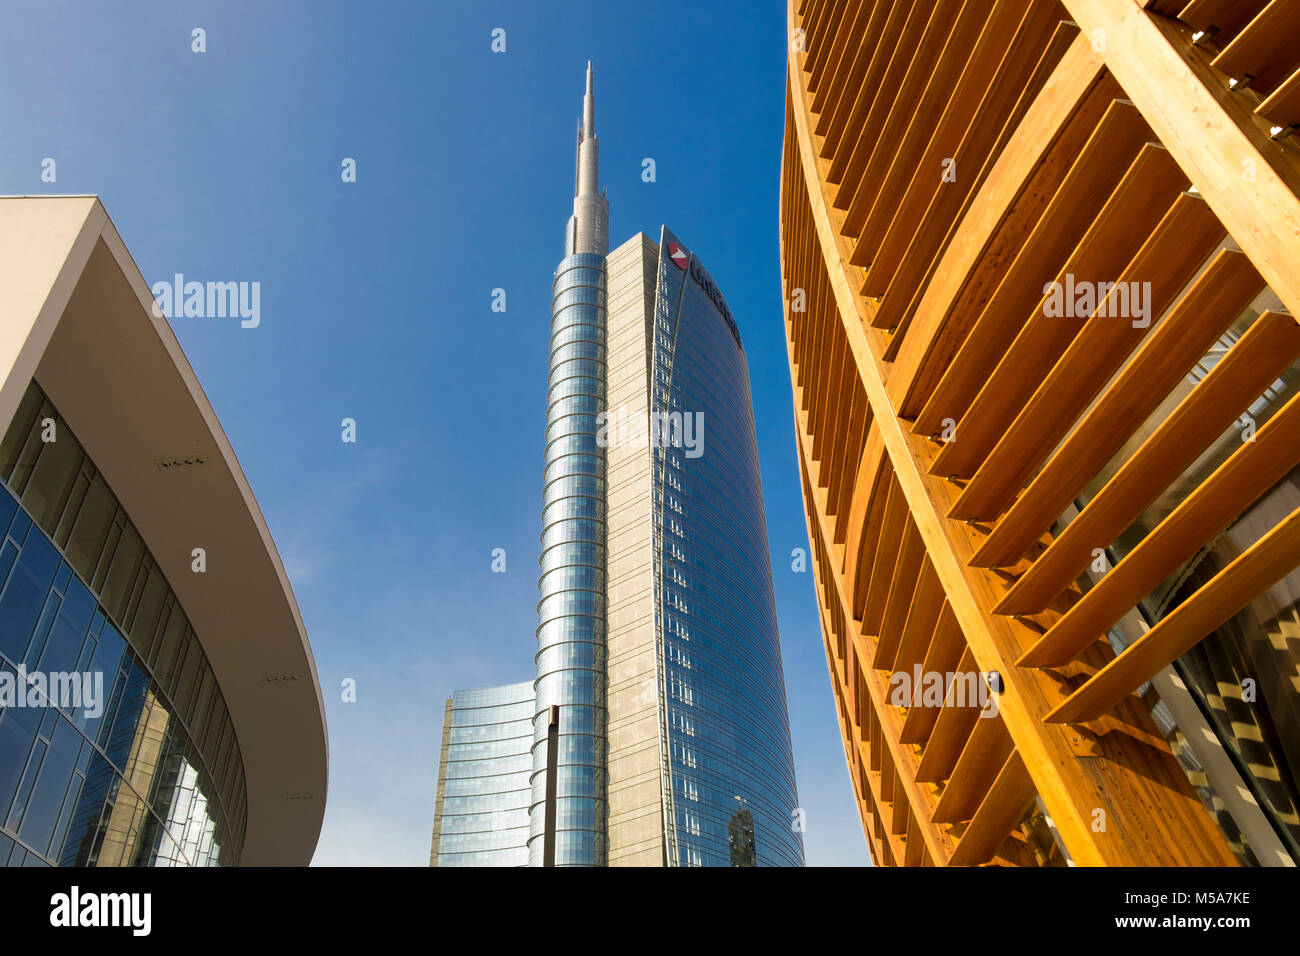 Architecture moderne - UniCredit UniCredit Torre Tour ou au quartier des affaires de Porta Nuova, Milan, Italie, Photo Stock